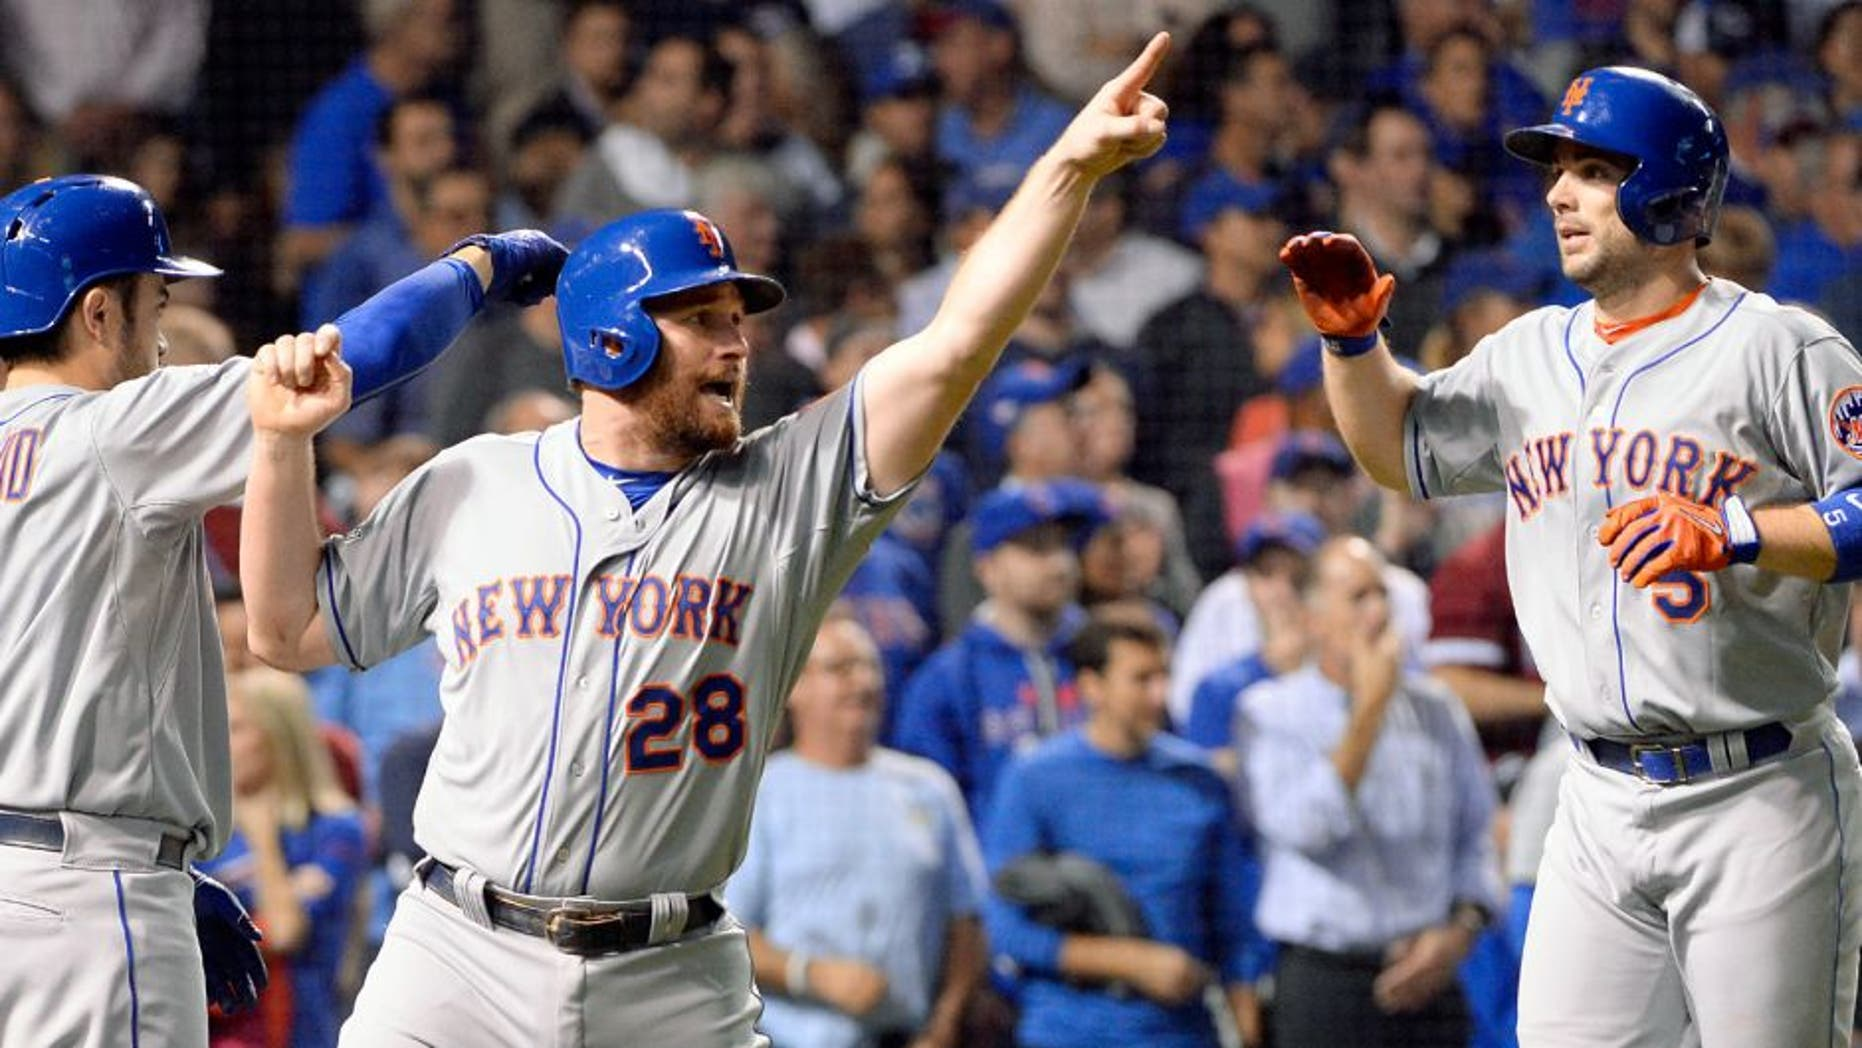 CHICAGO, IL - OCTOBER 21: Daniel Murphy #28 and David Wright #5 of the New York Mets celebrate after scoring on Lucas Duda's two-RBI double in the second inning of Game 4 of the NLCS against the Chicago Cubs at Wrigley Field on Wednesday, October 21, 2015 in Chicago, Illinois. (Photo by Ron Vesely/MLB Photos via Getty Images)